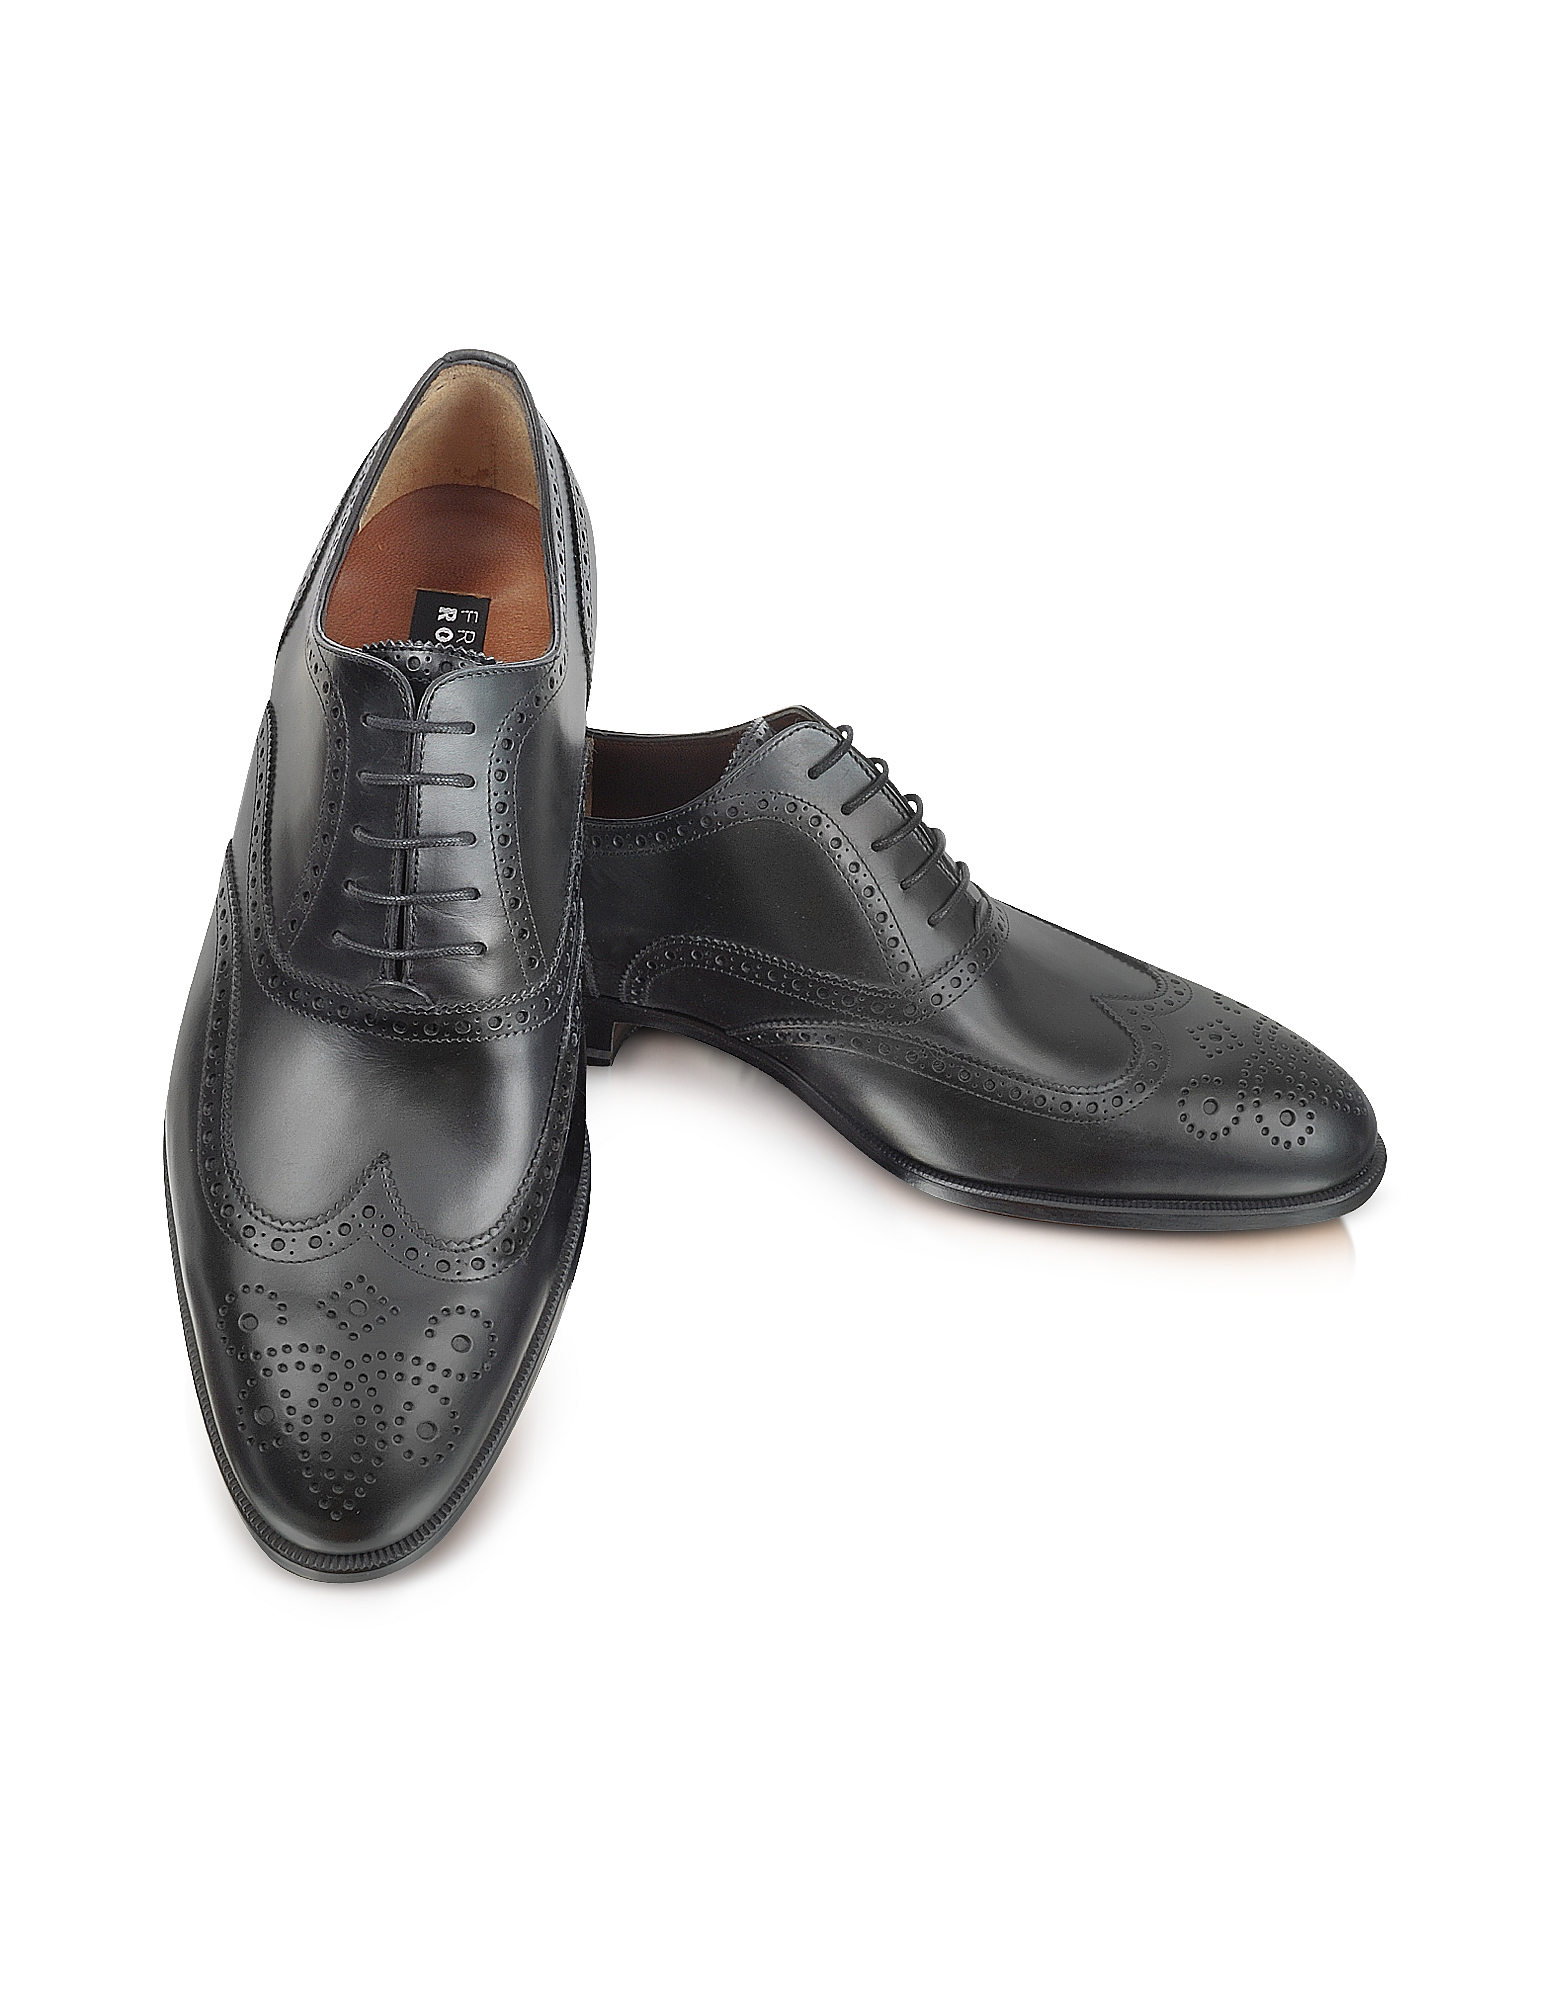 Fratelli Rossetti Shoes, Anilcalf - Black Leather Oxford